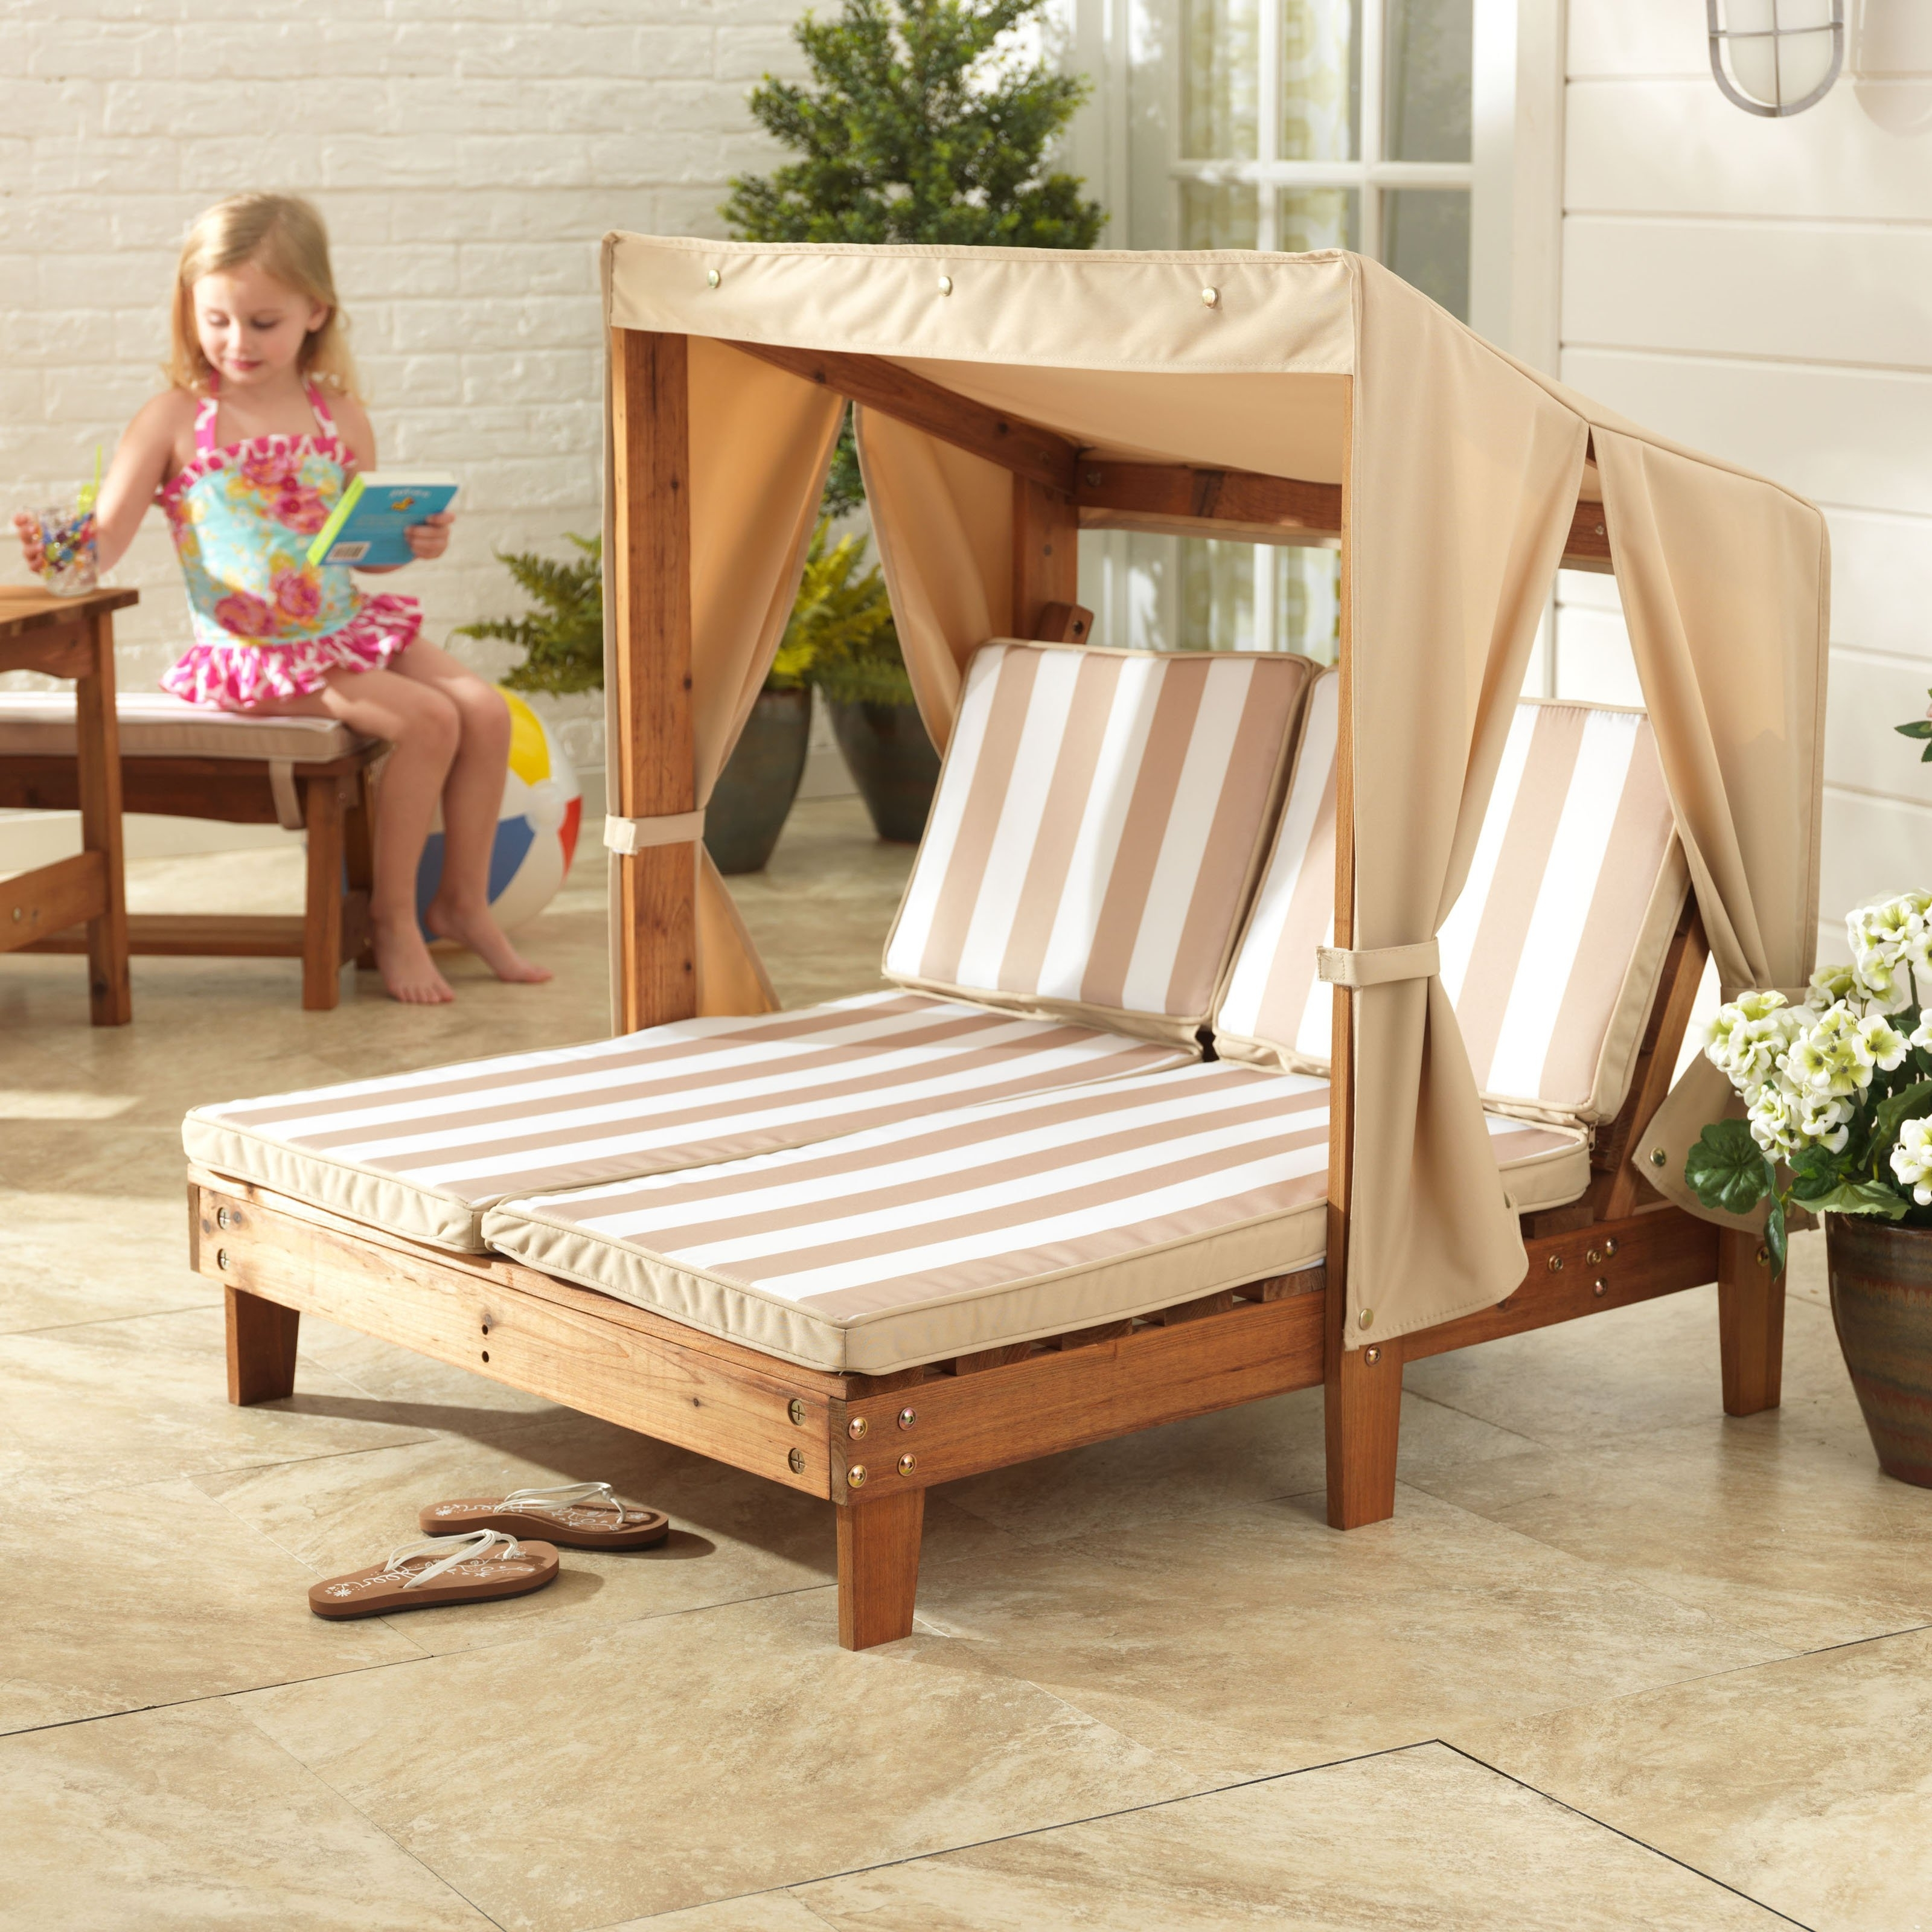 Kids Chaises pertaining to Most Popular Kidkraft Double Chaise Chair - 502 - Walmart